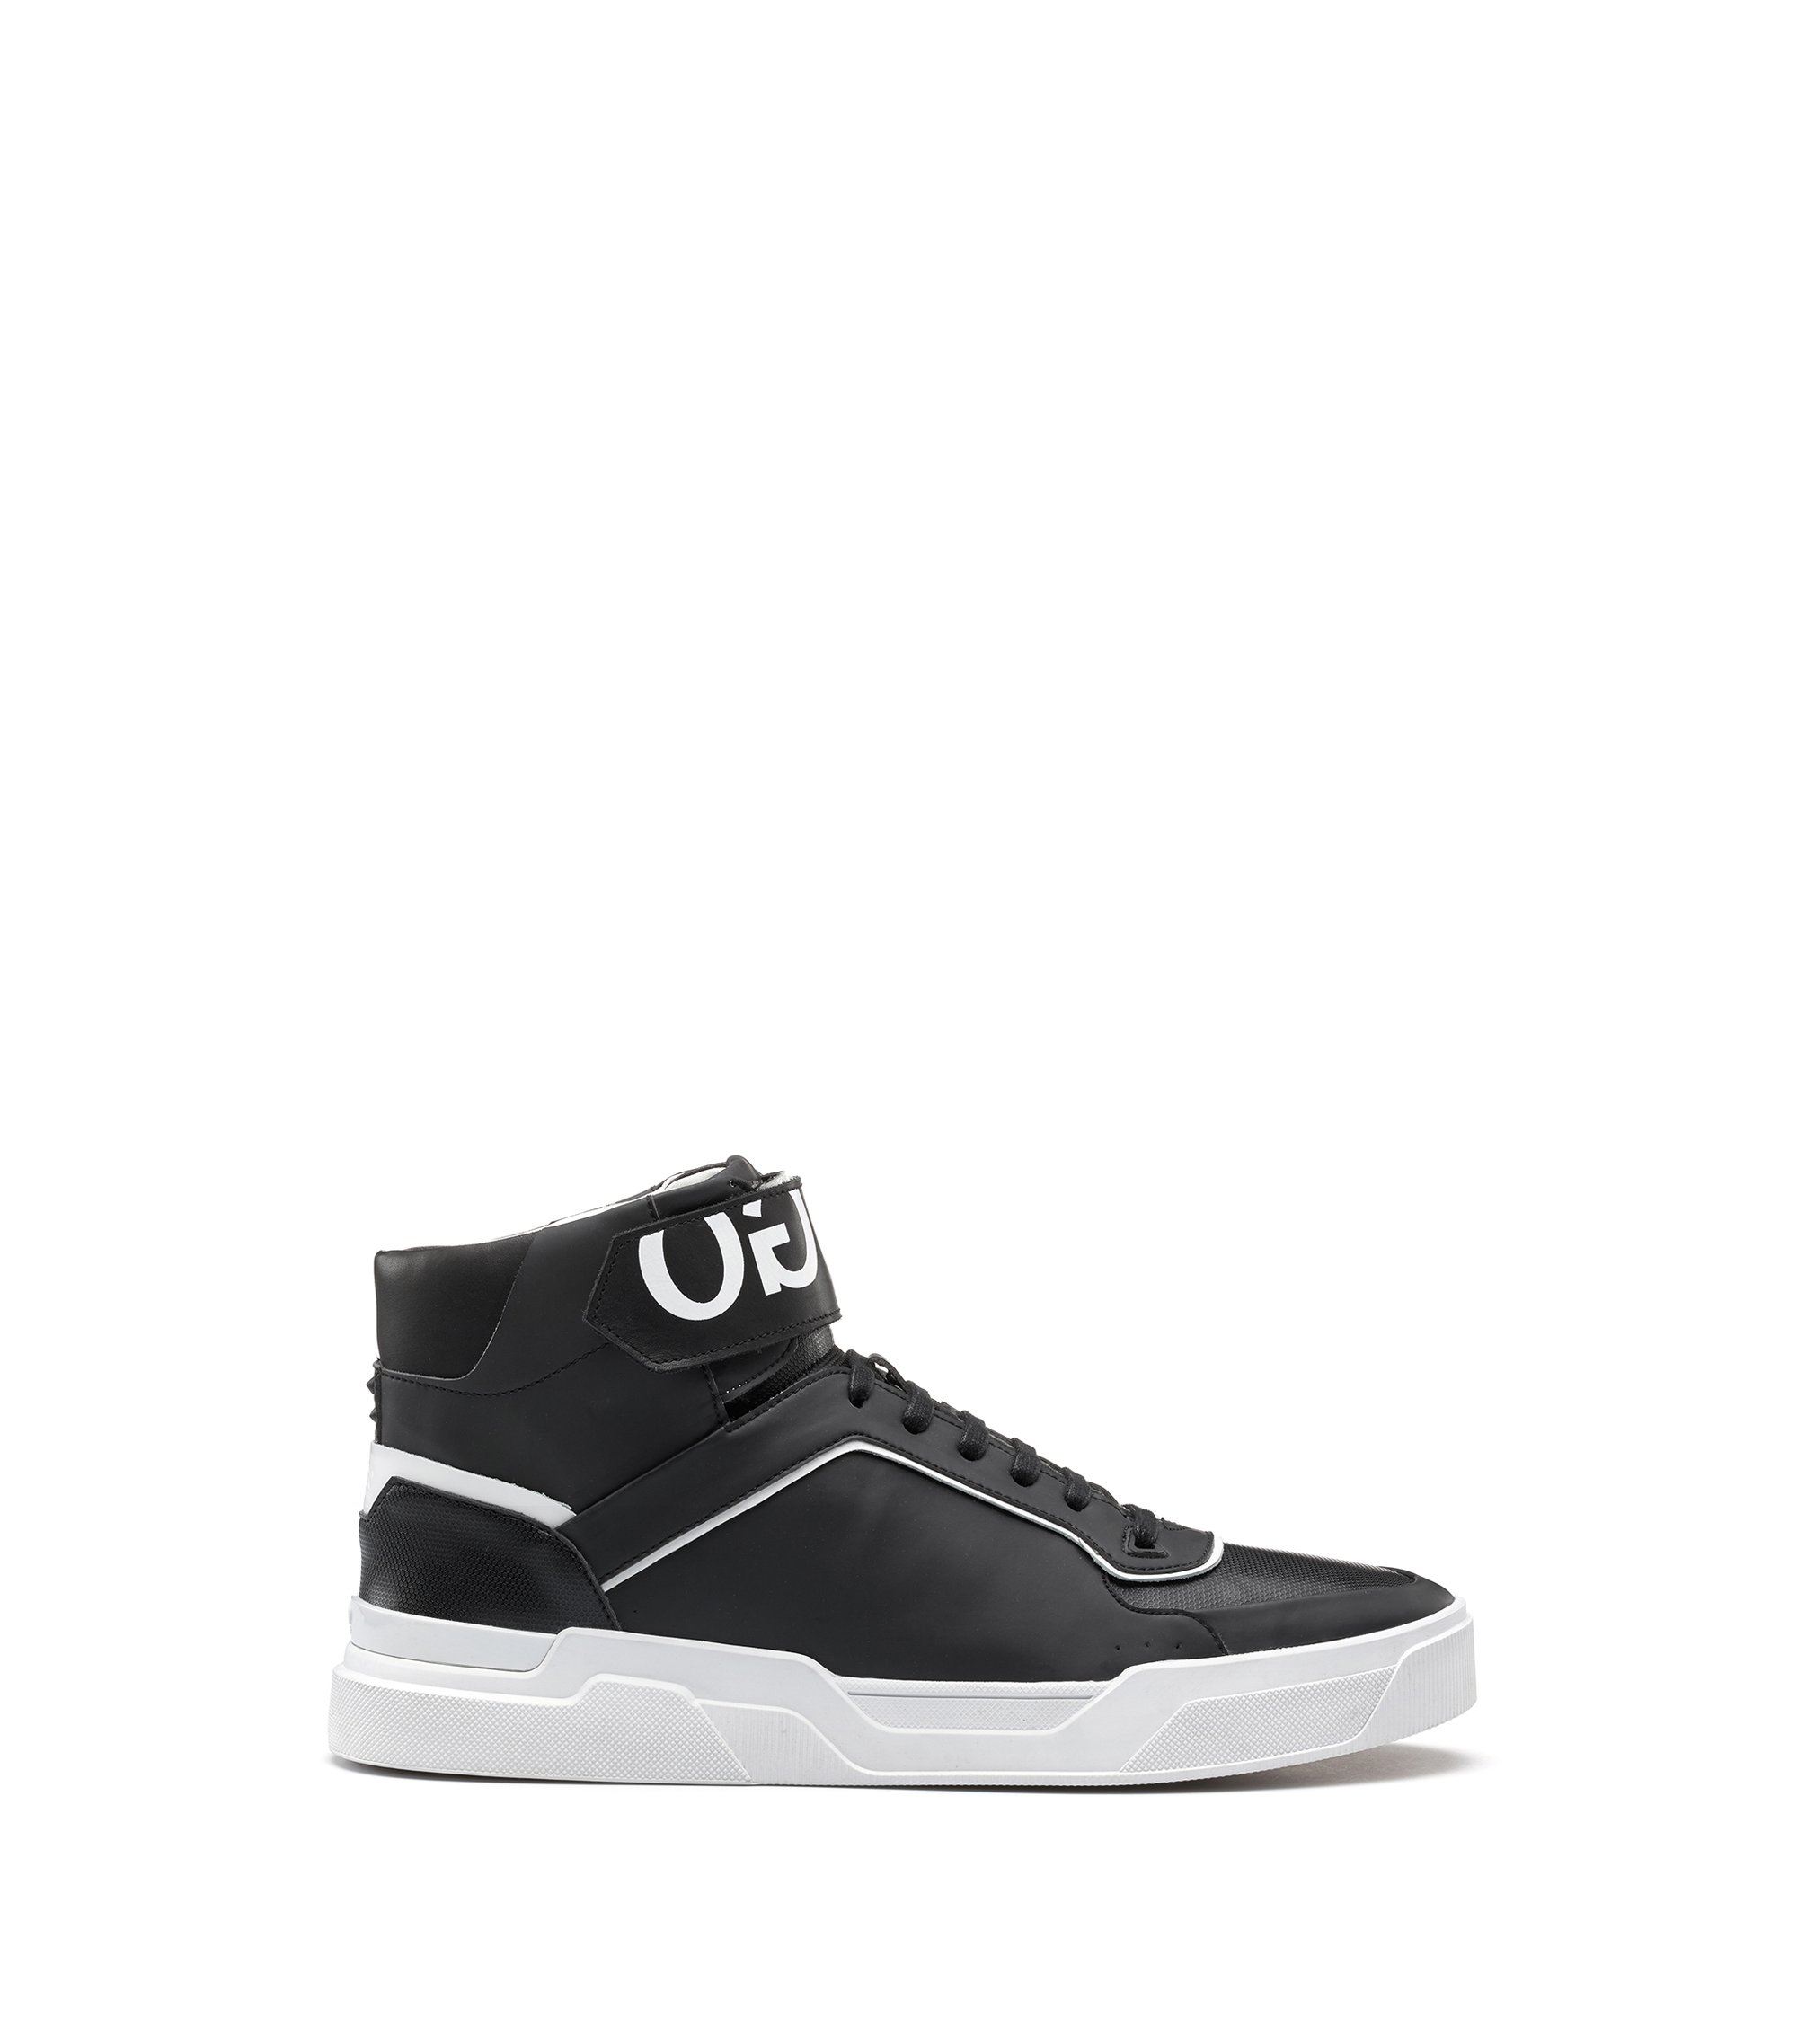 Reverse-logo high-top trainers with nappa leather and embossed technical uppers, Black